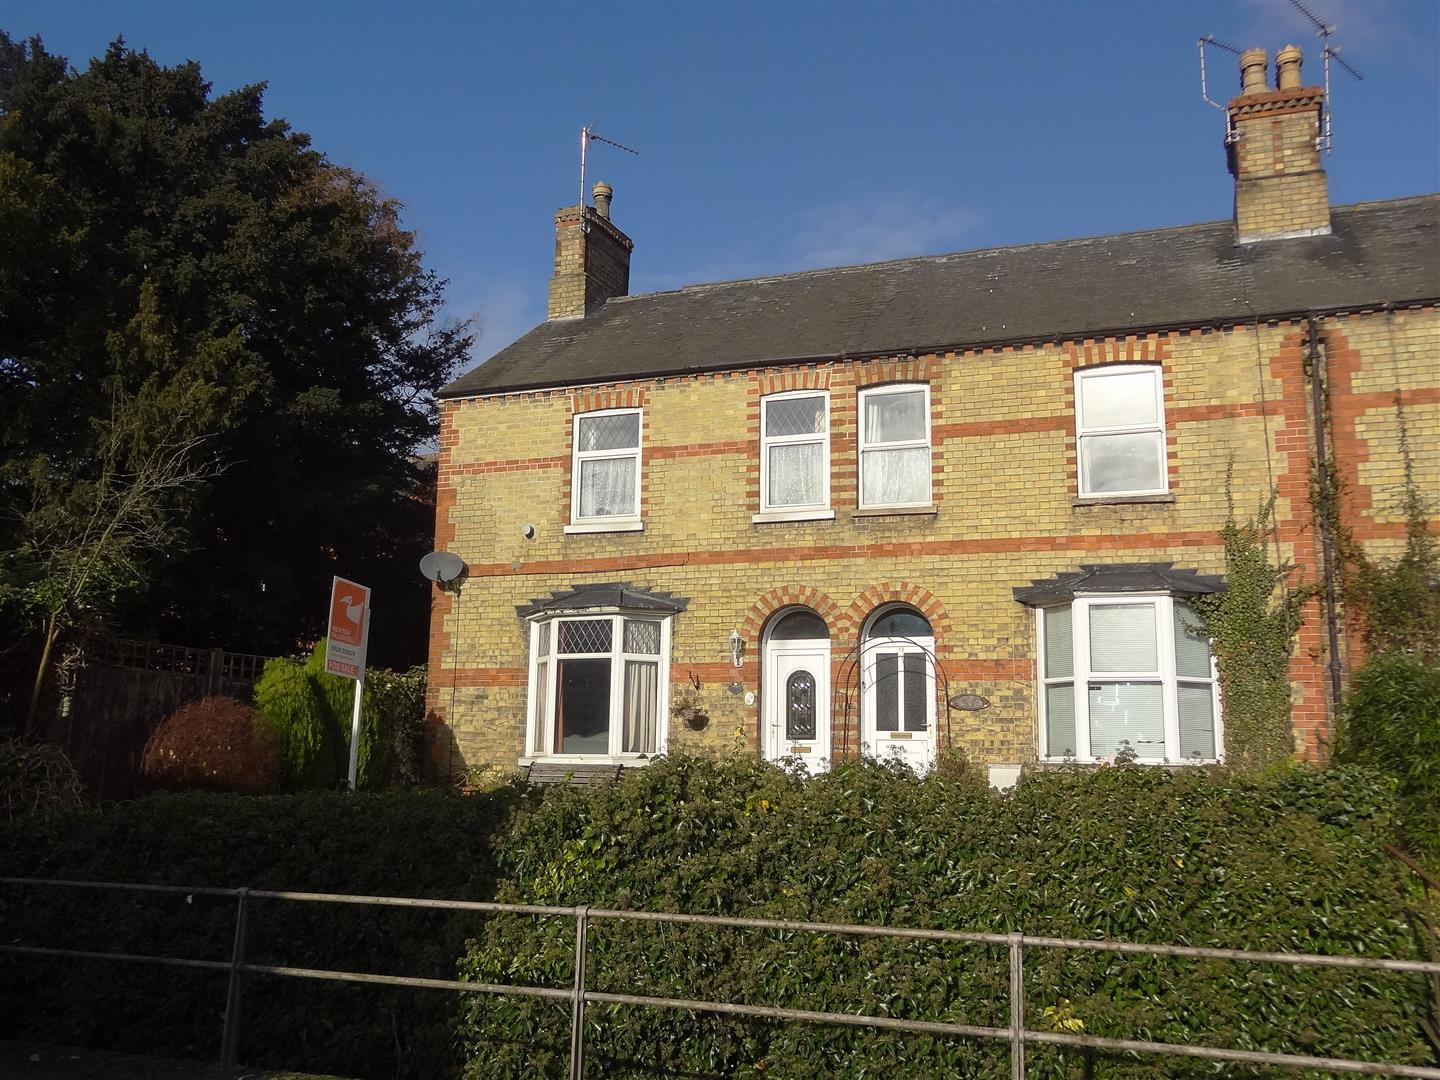 3 Bedrooms Terraced House for sale in West Banks, Sleaford